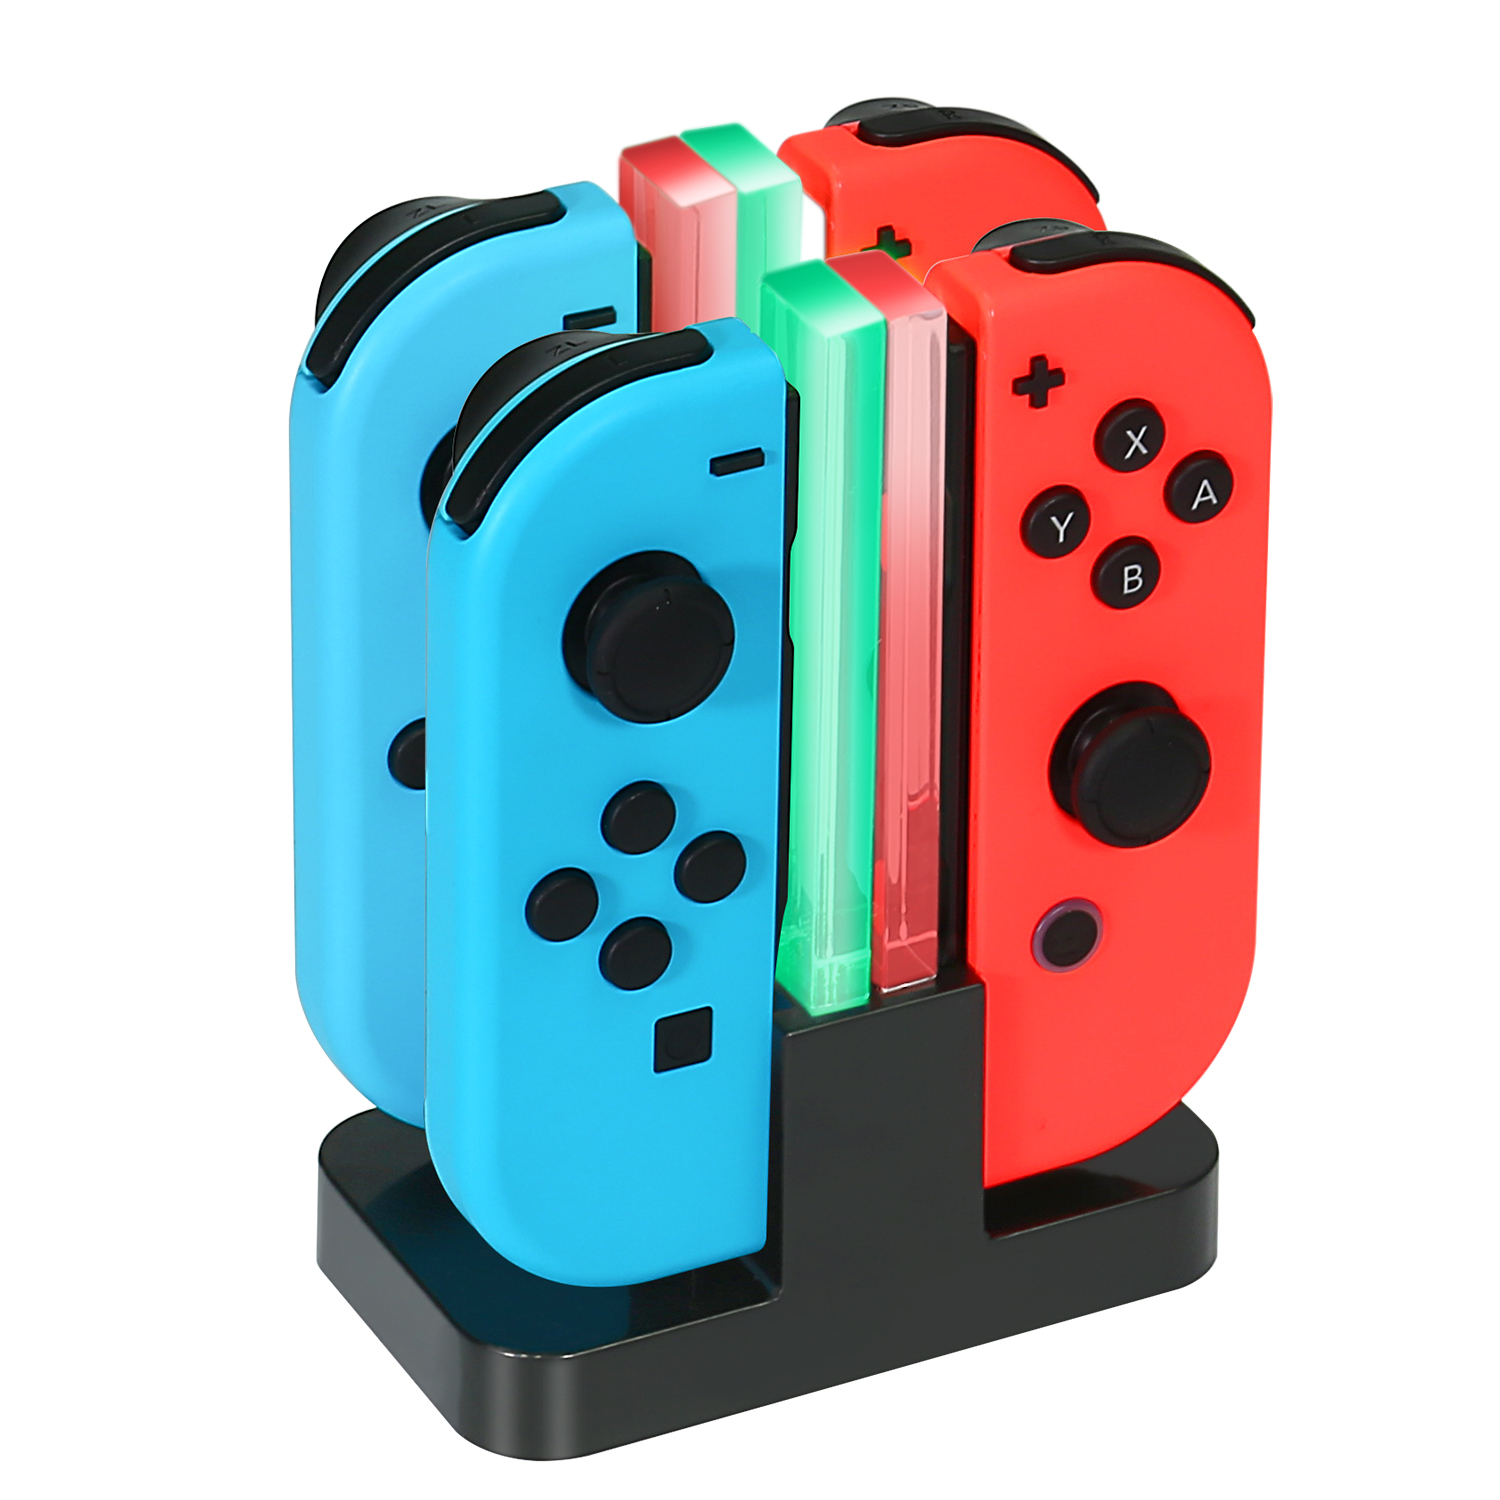 KINGTOP Charging Dock For Nintendo Switch Joy-Con Controllers